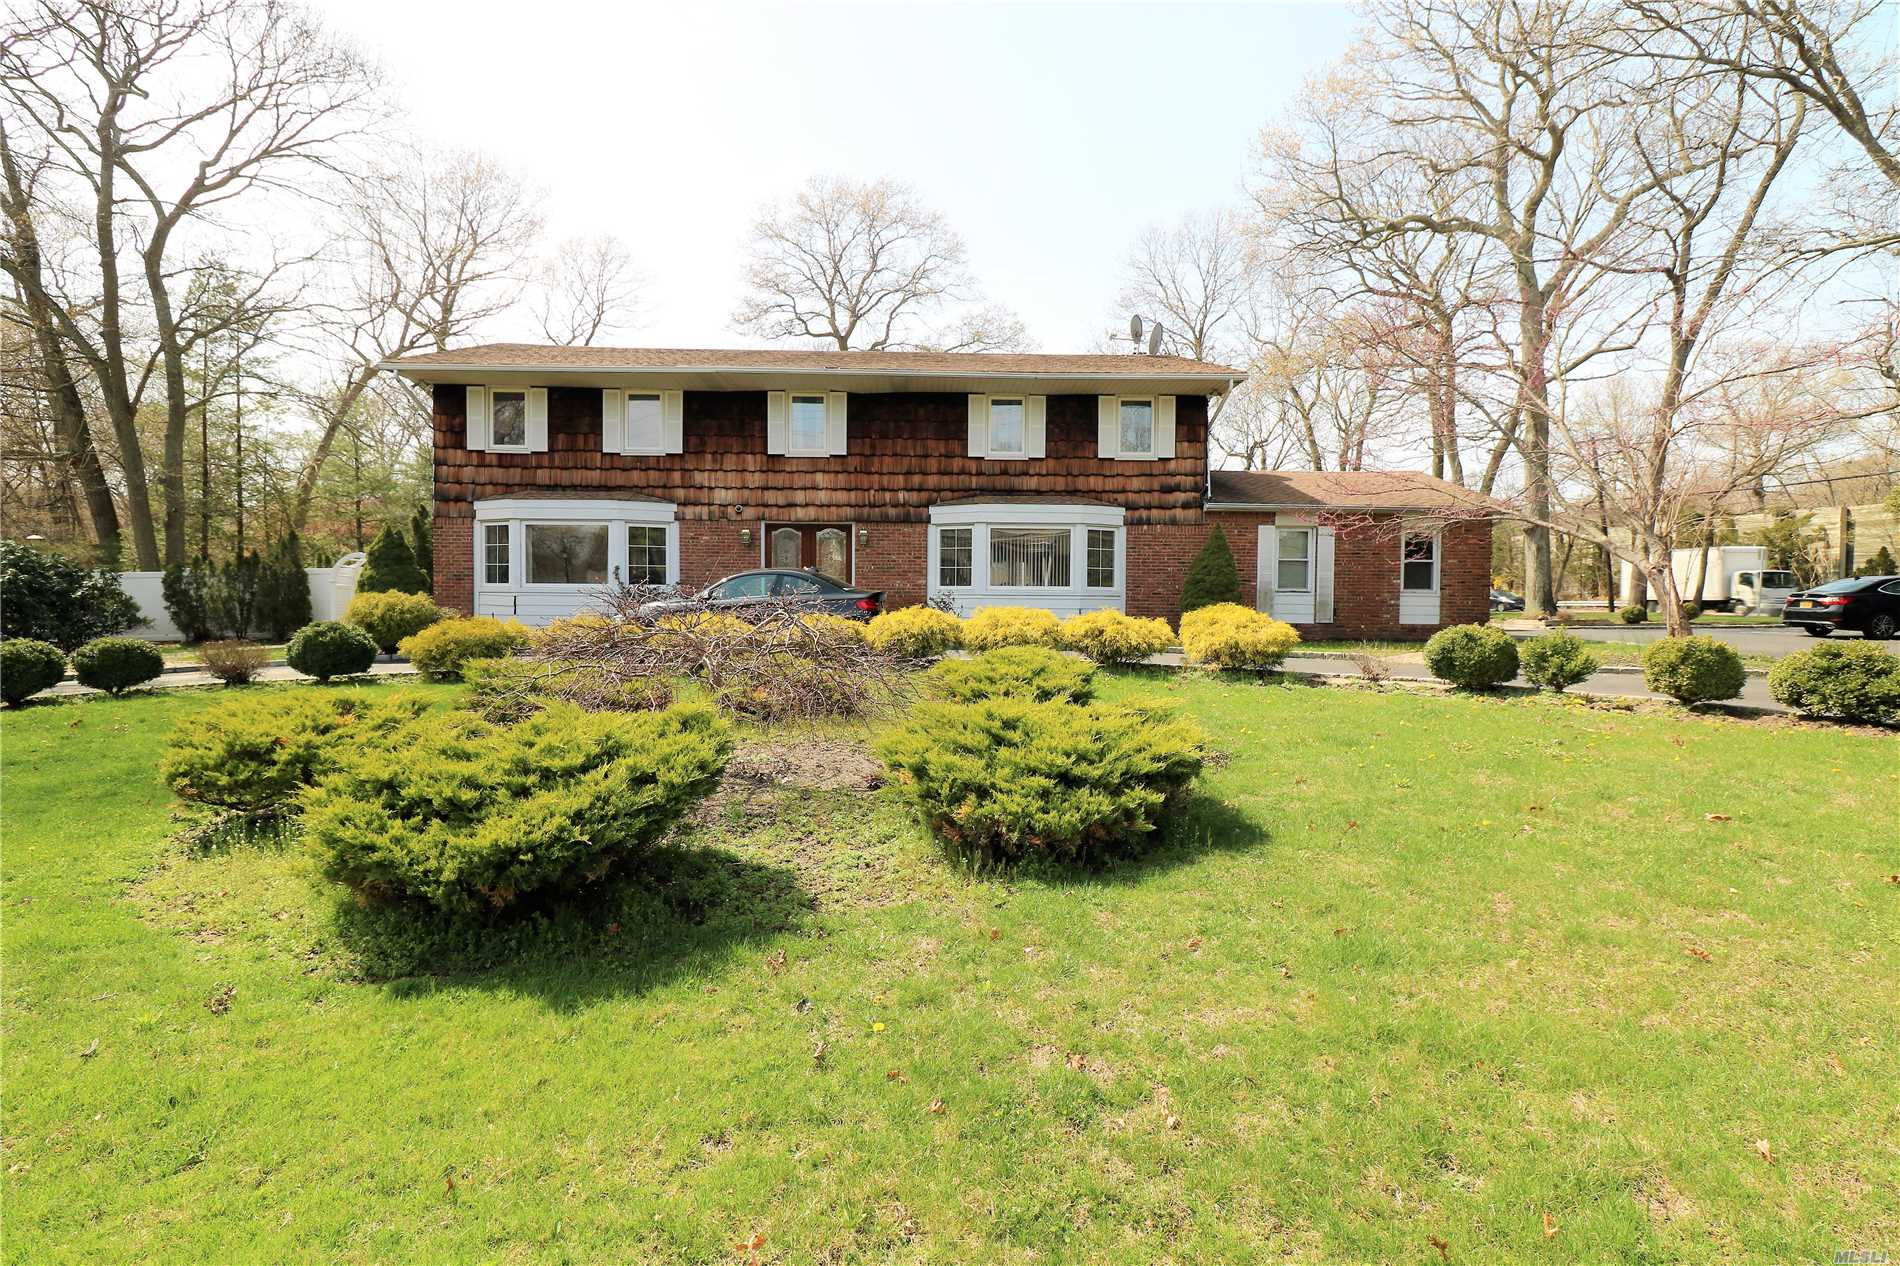 Grand Colonial With Professional Office Or Separate Guest Quarters! Main House Has Foyer W/ Grand Staircase! Large Flr & Fdr! Den With Fireplace & Sliders To Yard! Updated Gourmet Kitchen! 6 Bedrooms On The 2nd Floor! Master Br W/ En Suite! Full Basement! Pro - Office Has Waiting Room/Reception, 3 Small Offices, Kitchenette, .5 Bath & Big Office. Entertainers Yard With Lots Of Lawn!! Heat/Cac 4 Yrs! Roof 12 Years! Otsego, Candlewood, Hhh West TAX Reduction Letter Attached Approx $4, 000 Reduction